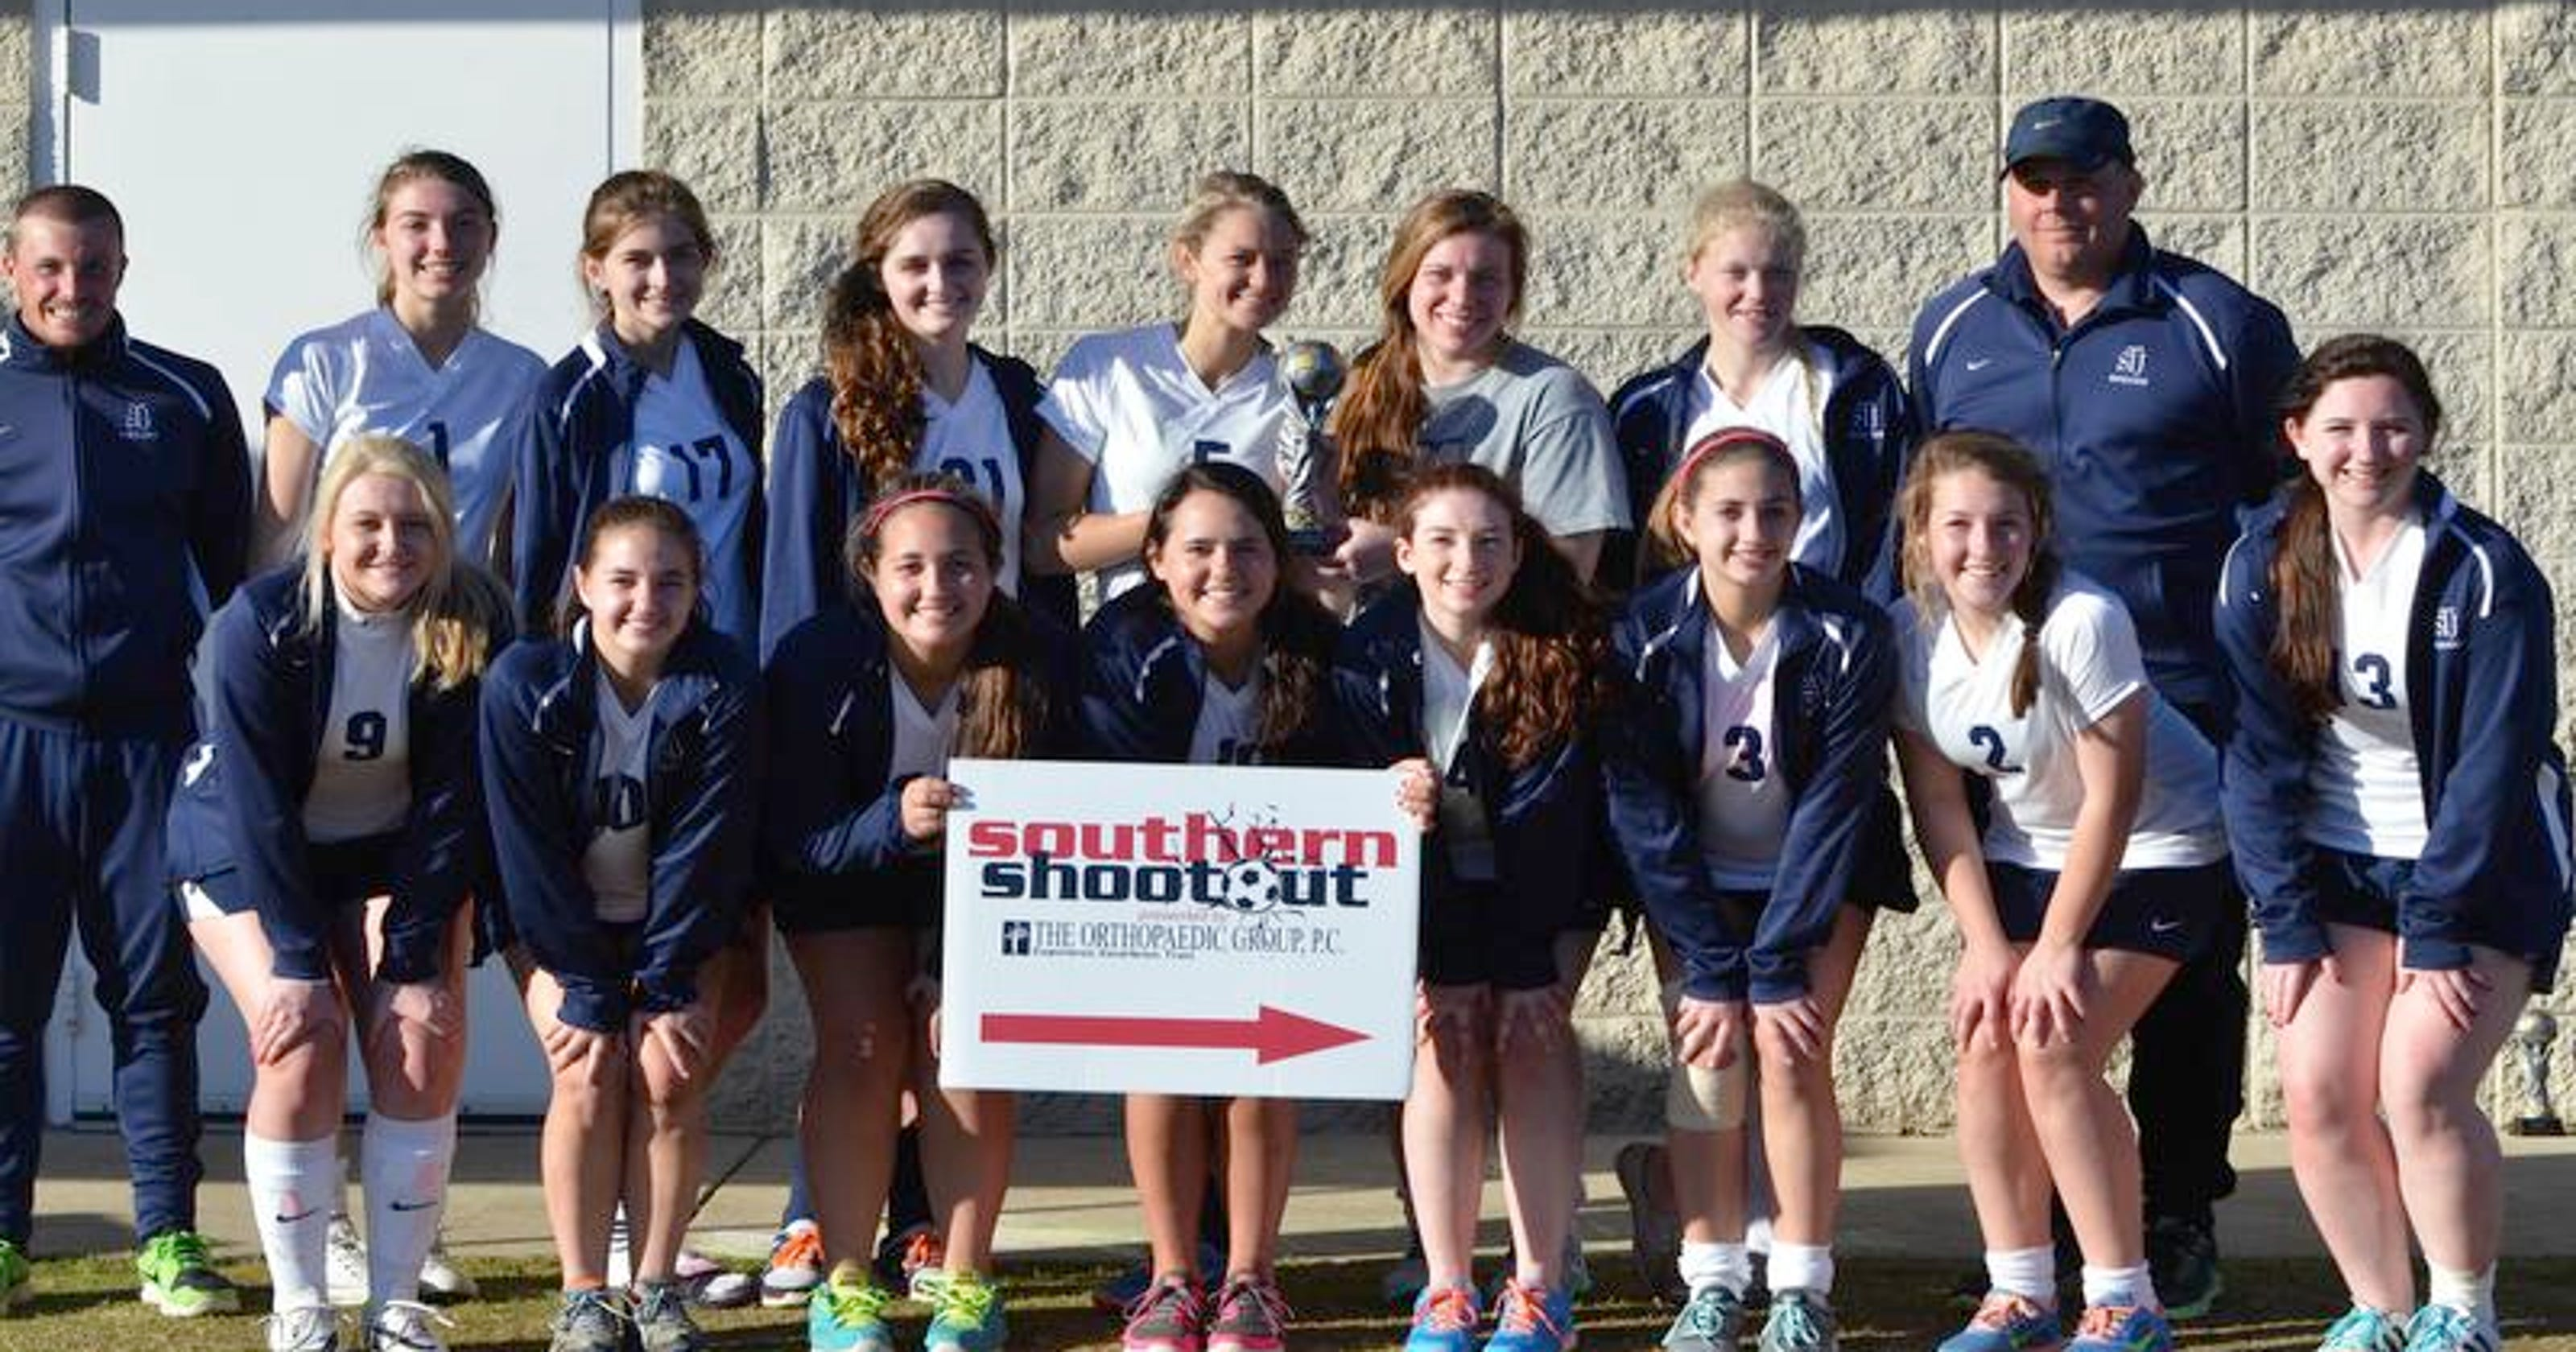 STJ soccer teams win 'Southern Shootout'